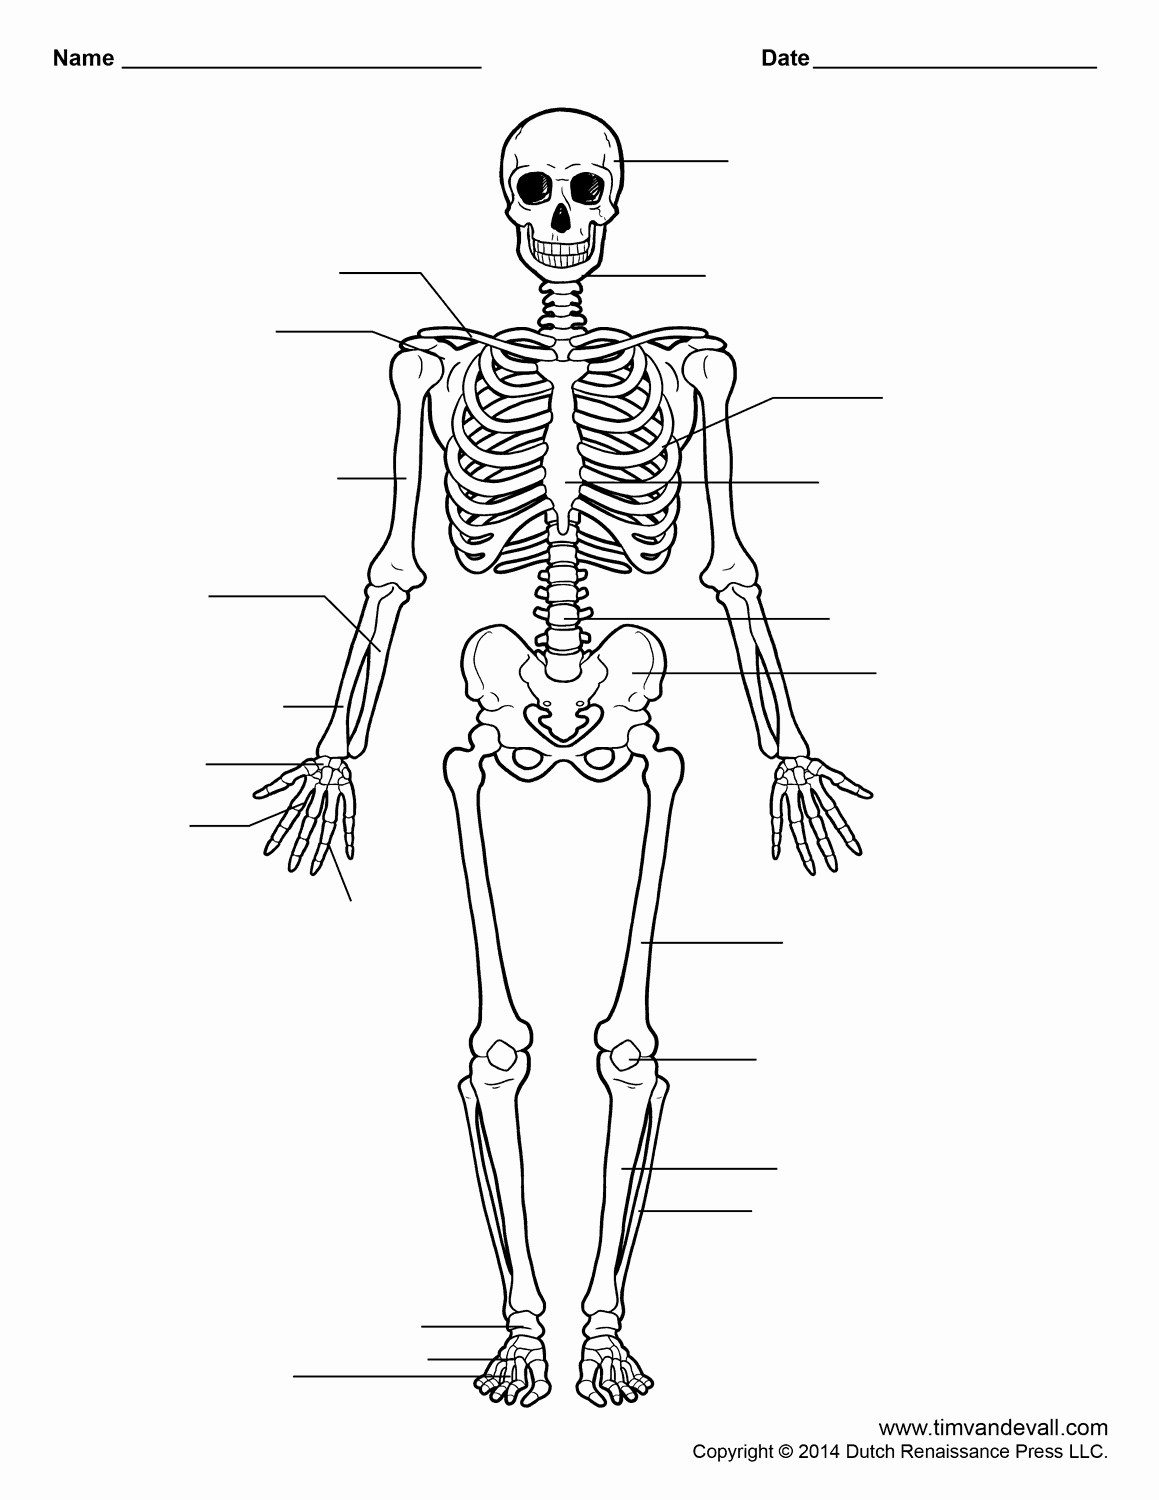 The Skeletal System Worksheet Beautiful Free Printable Human Skeleton Worksheet for Students and